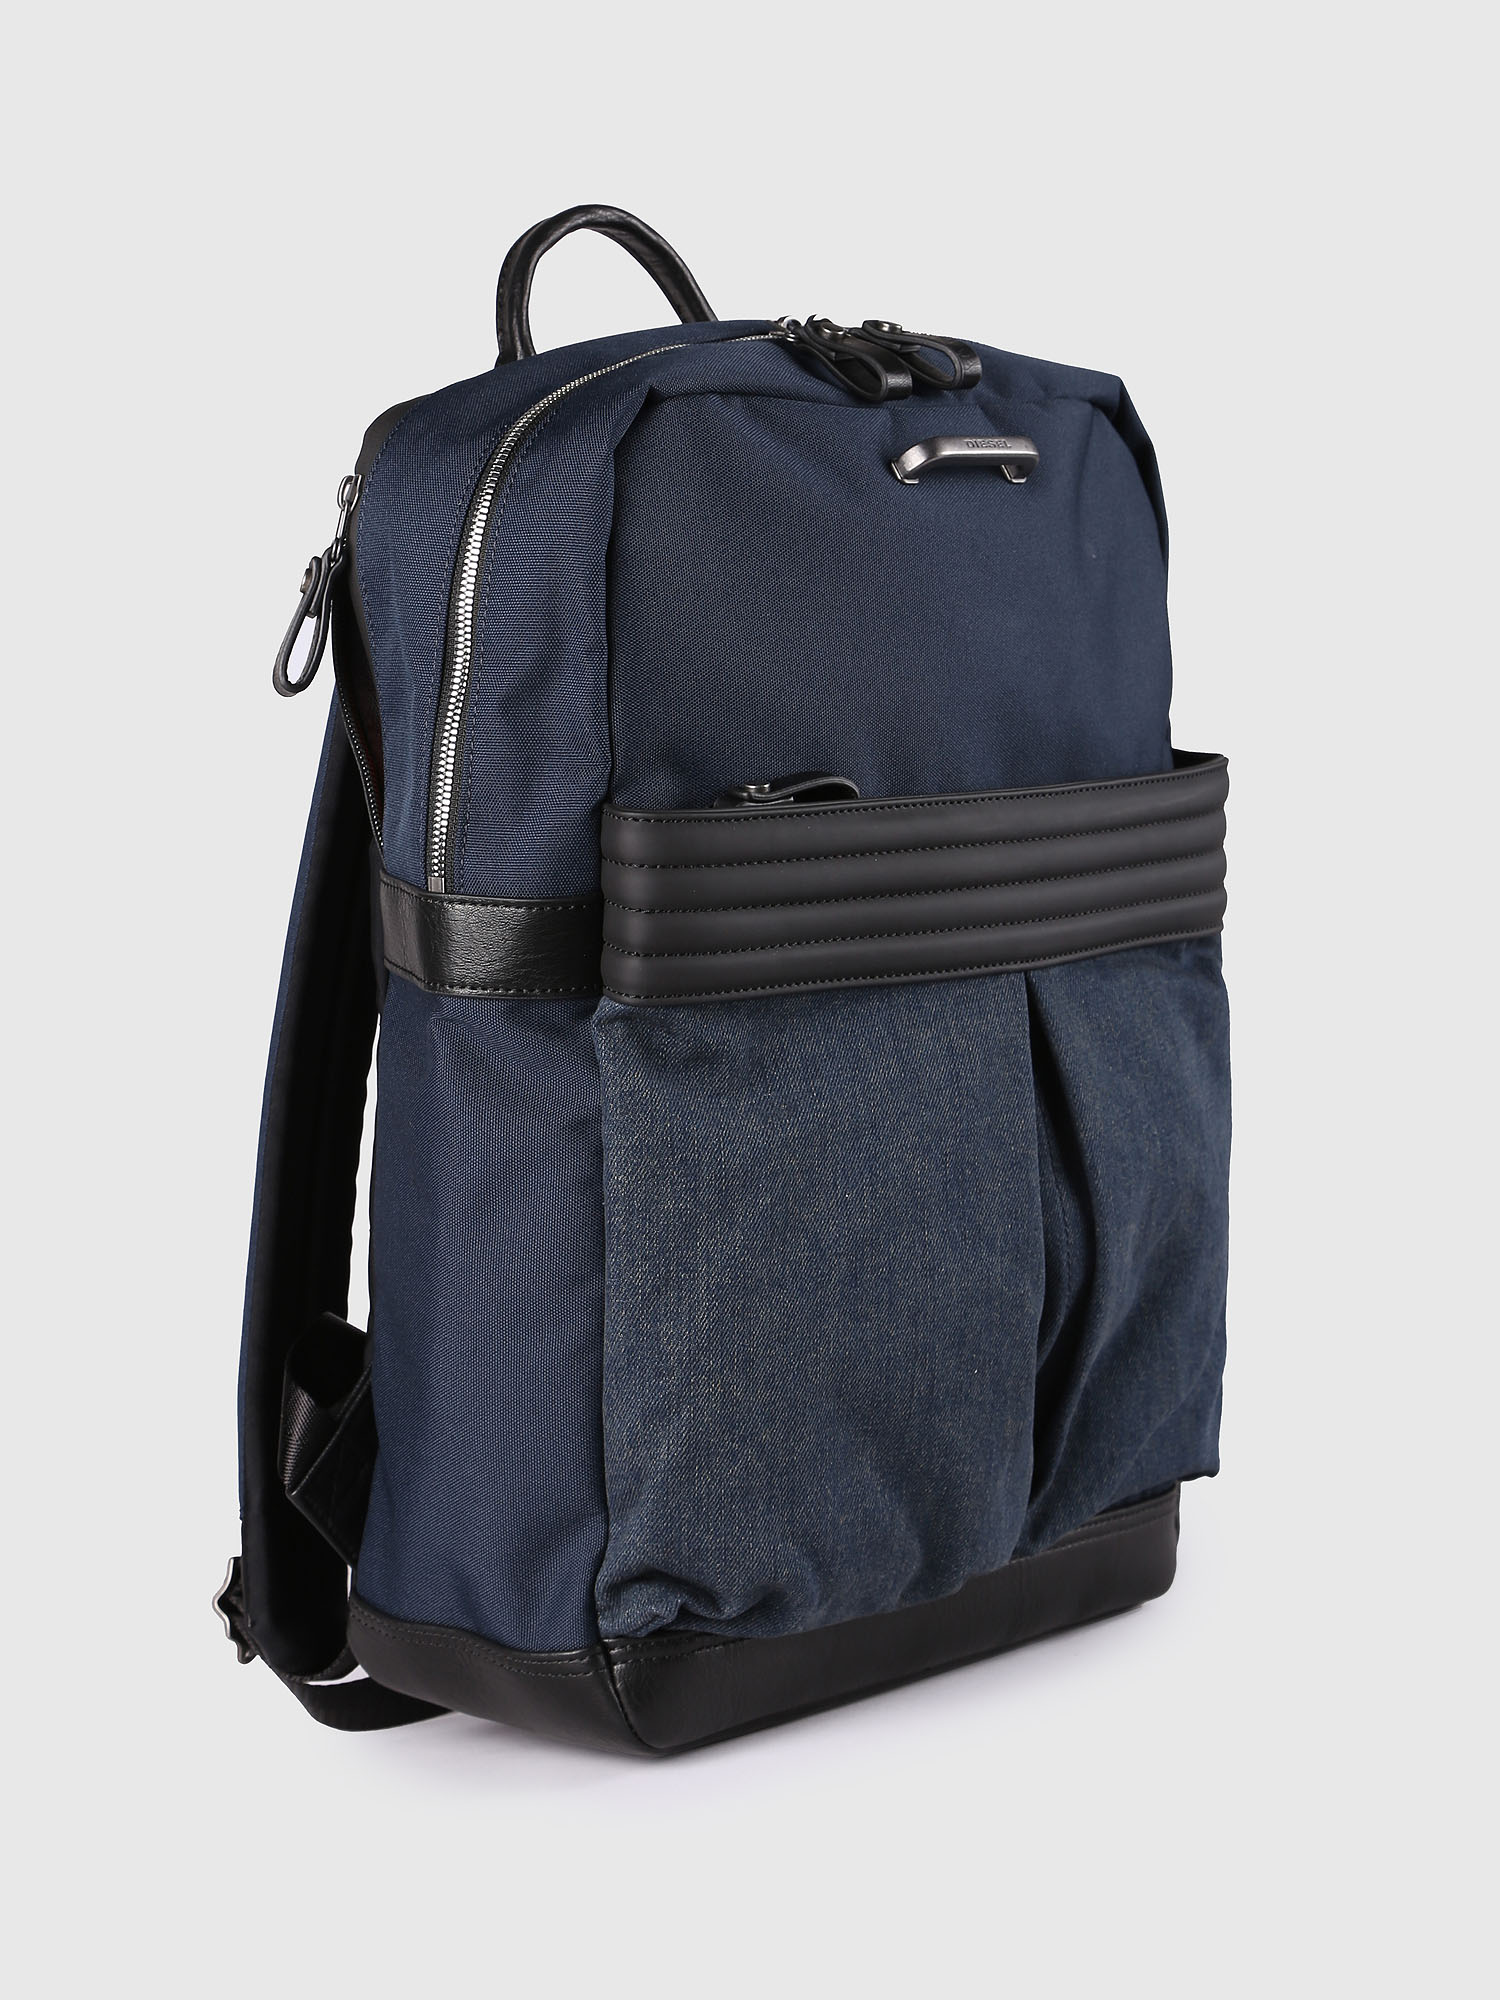 Diesel - M-PROOF BACK,  - Zaini - Image 3